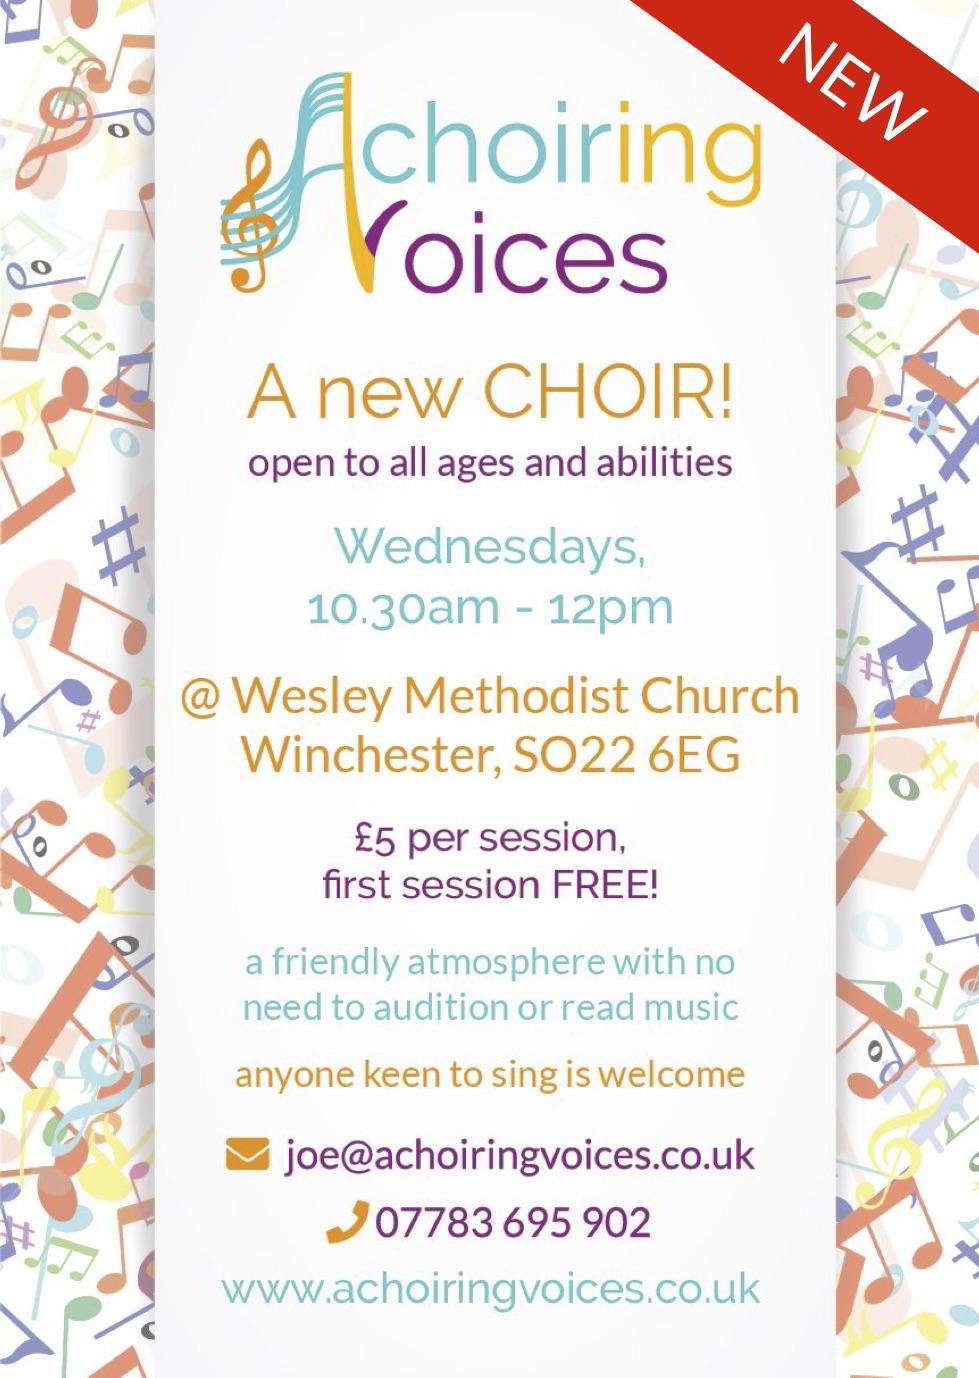 Description of New Choir in Winchester